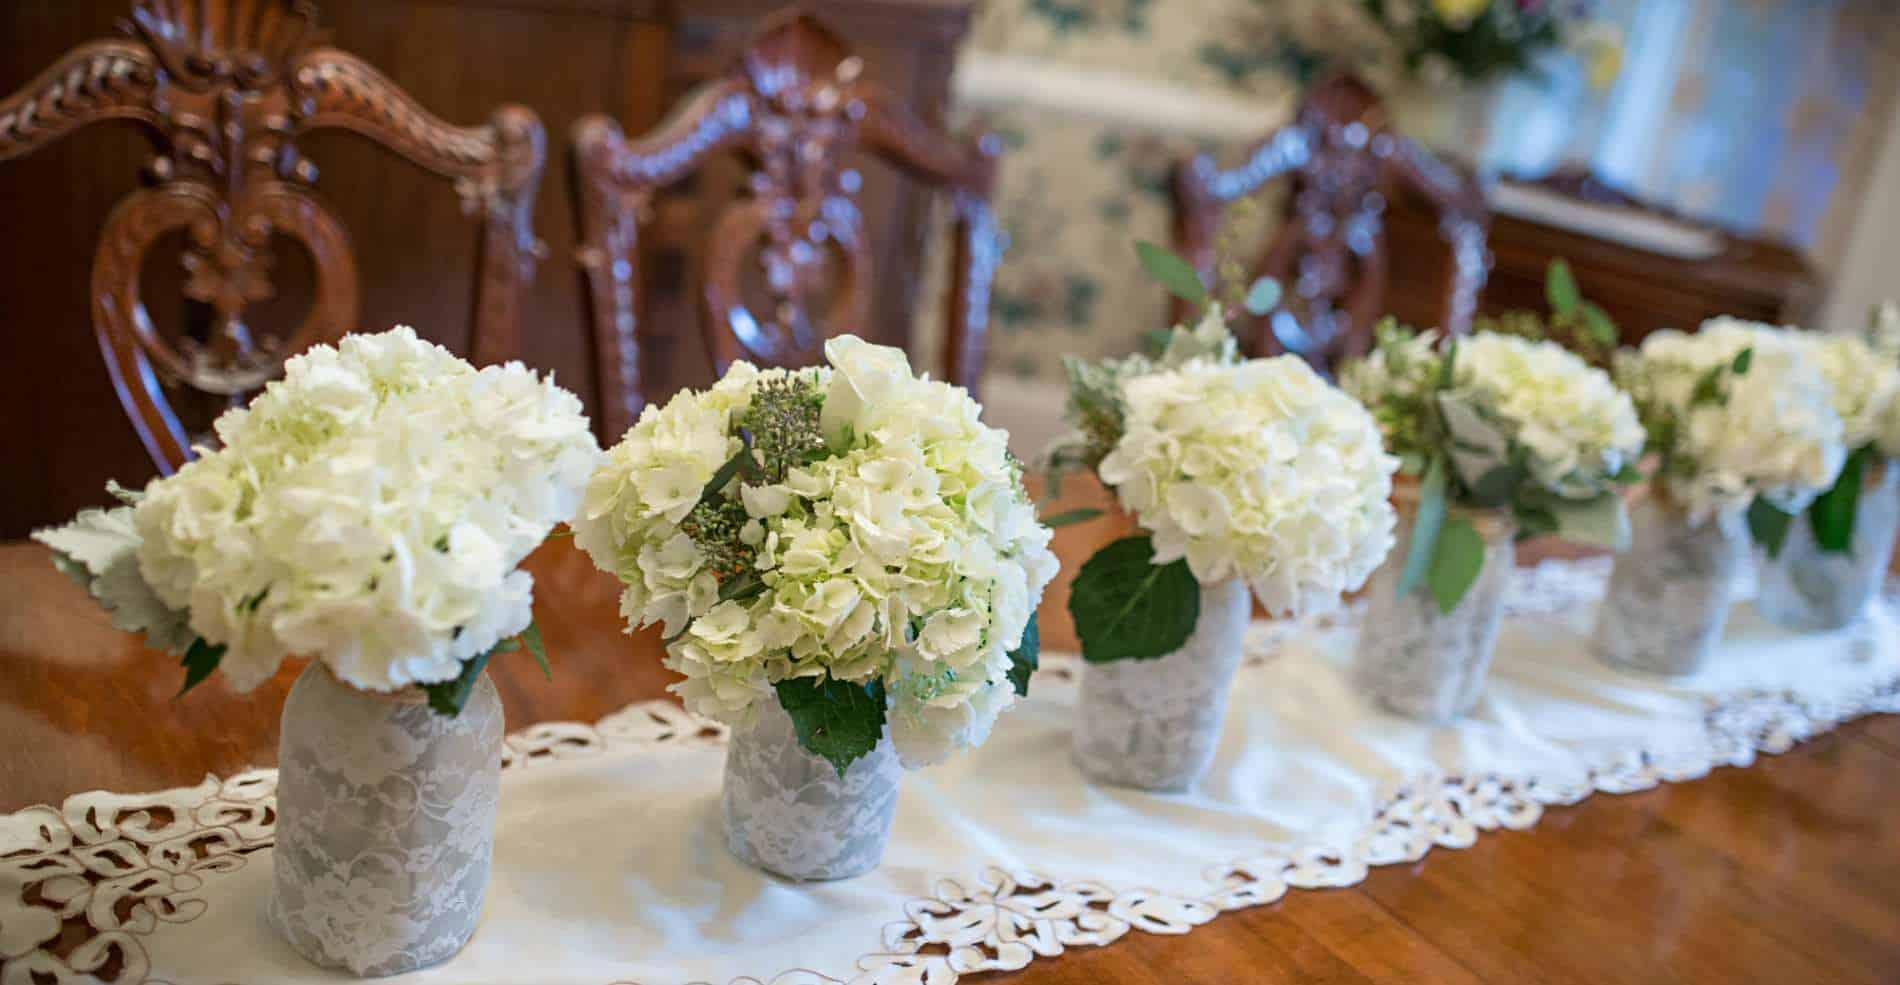 On a large table, small arrangemtents of white flowers line the center of the table on a white runner